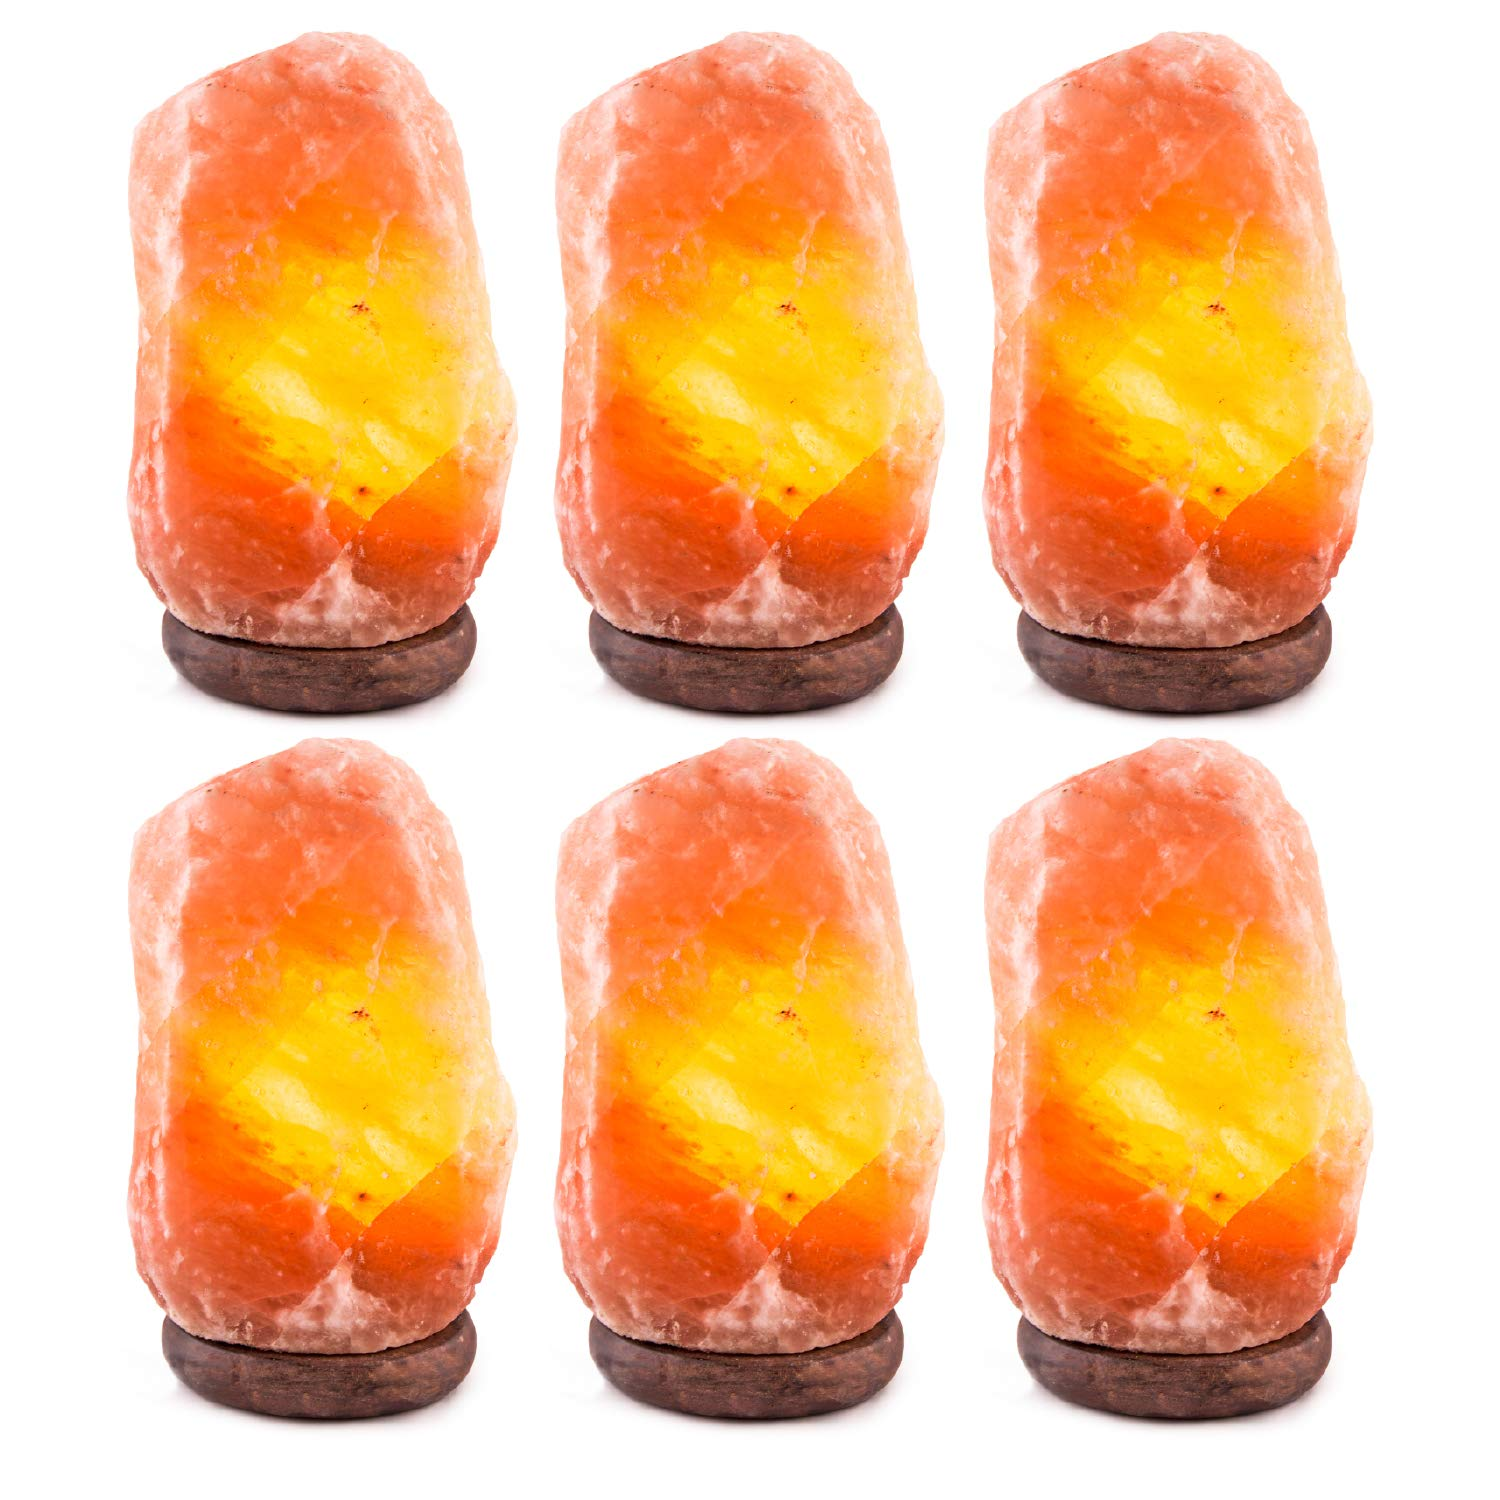 INVITING HOMES 6-7 lbs, 6 to 8 inch Himalayan Natural Salt Lamp On Wooden Base with Bulb and Cord - Pack of 6